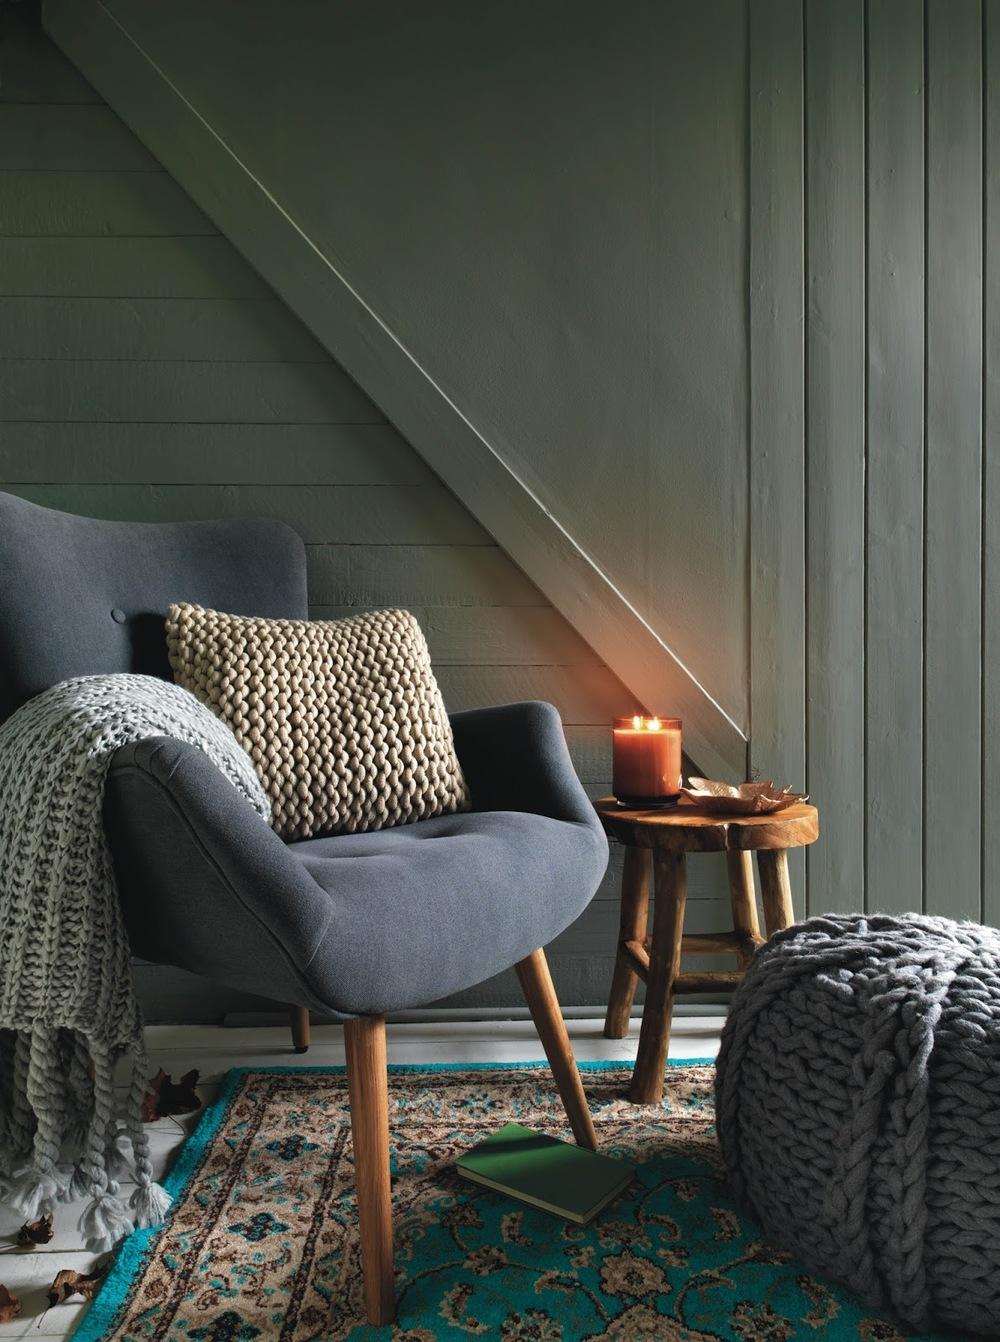 Eclectic interiors from the Home Sense A/W 15 collection